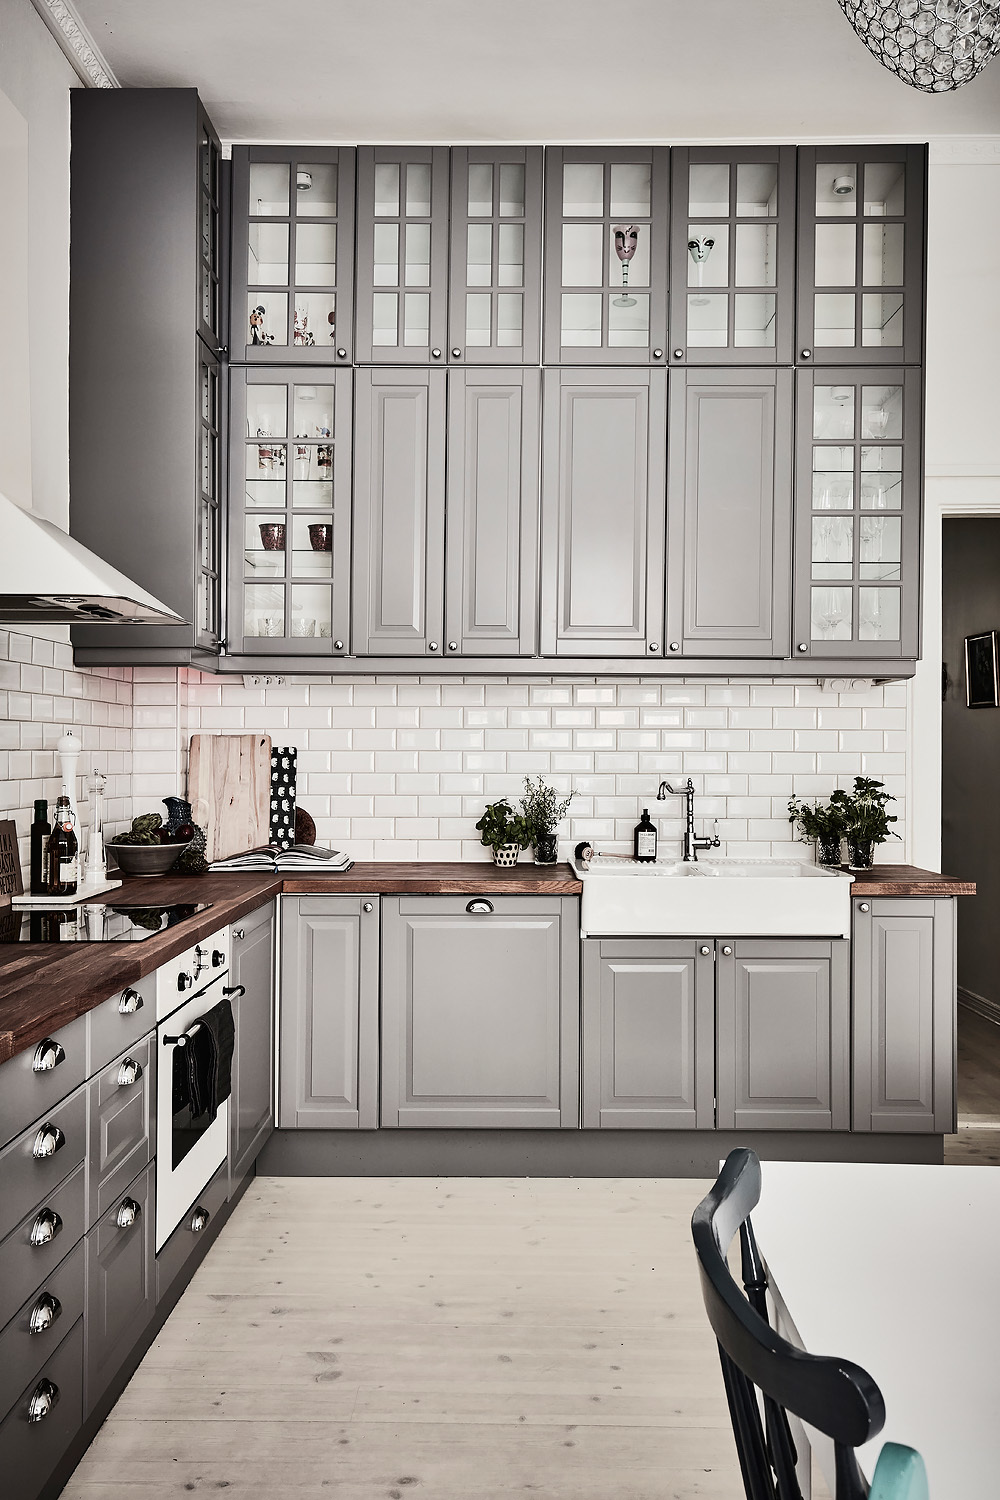 gray kitchen cabinets and white subway tiles - Kitchen Cabinet Ideas